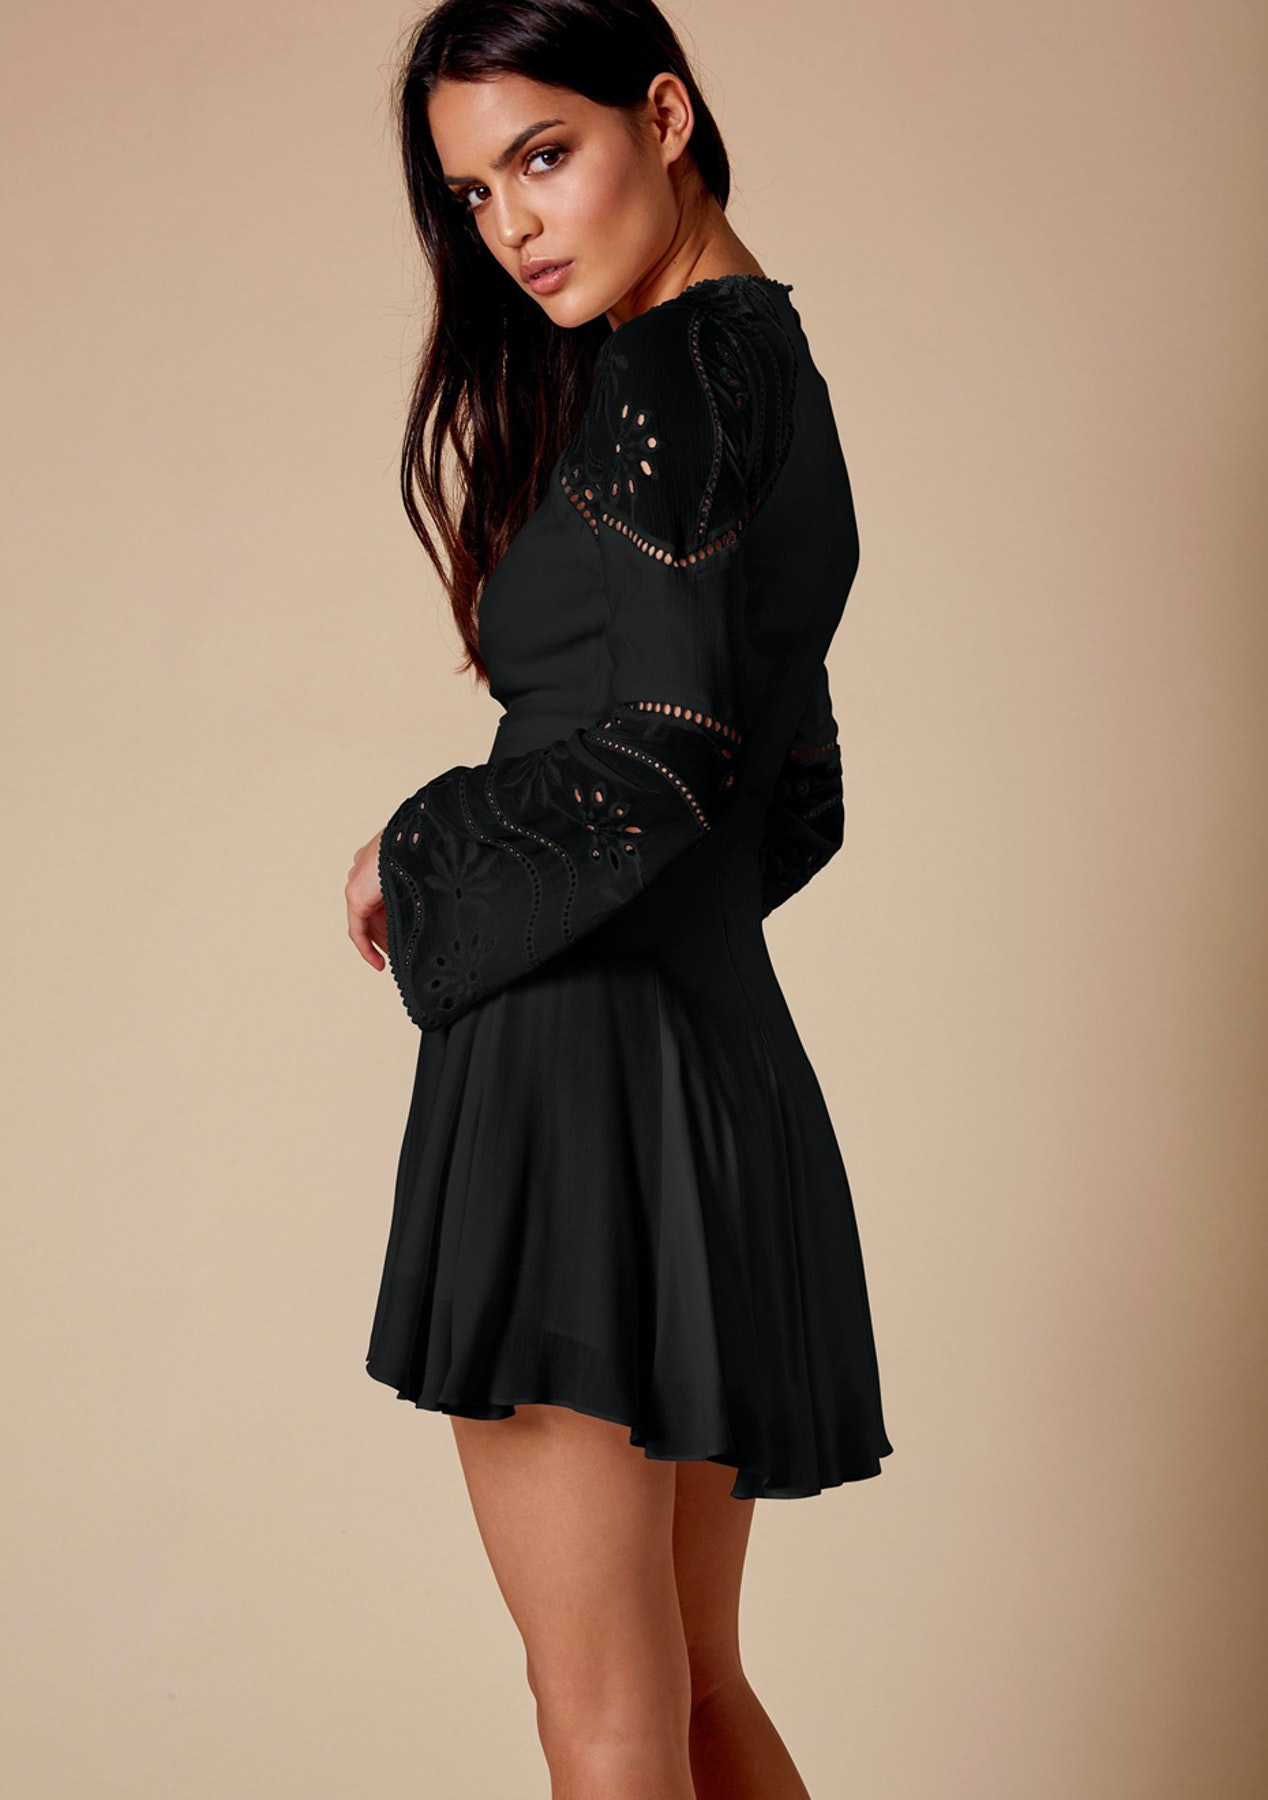 Winona Australia - Marine Short Dress - Black